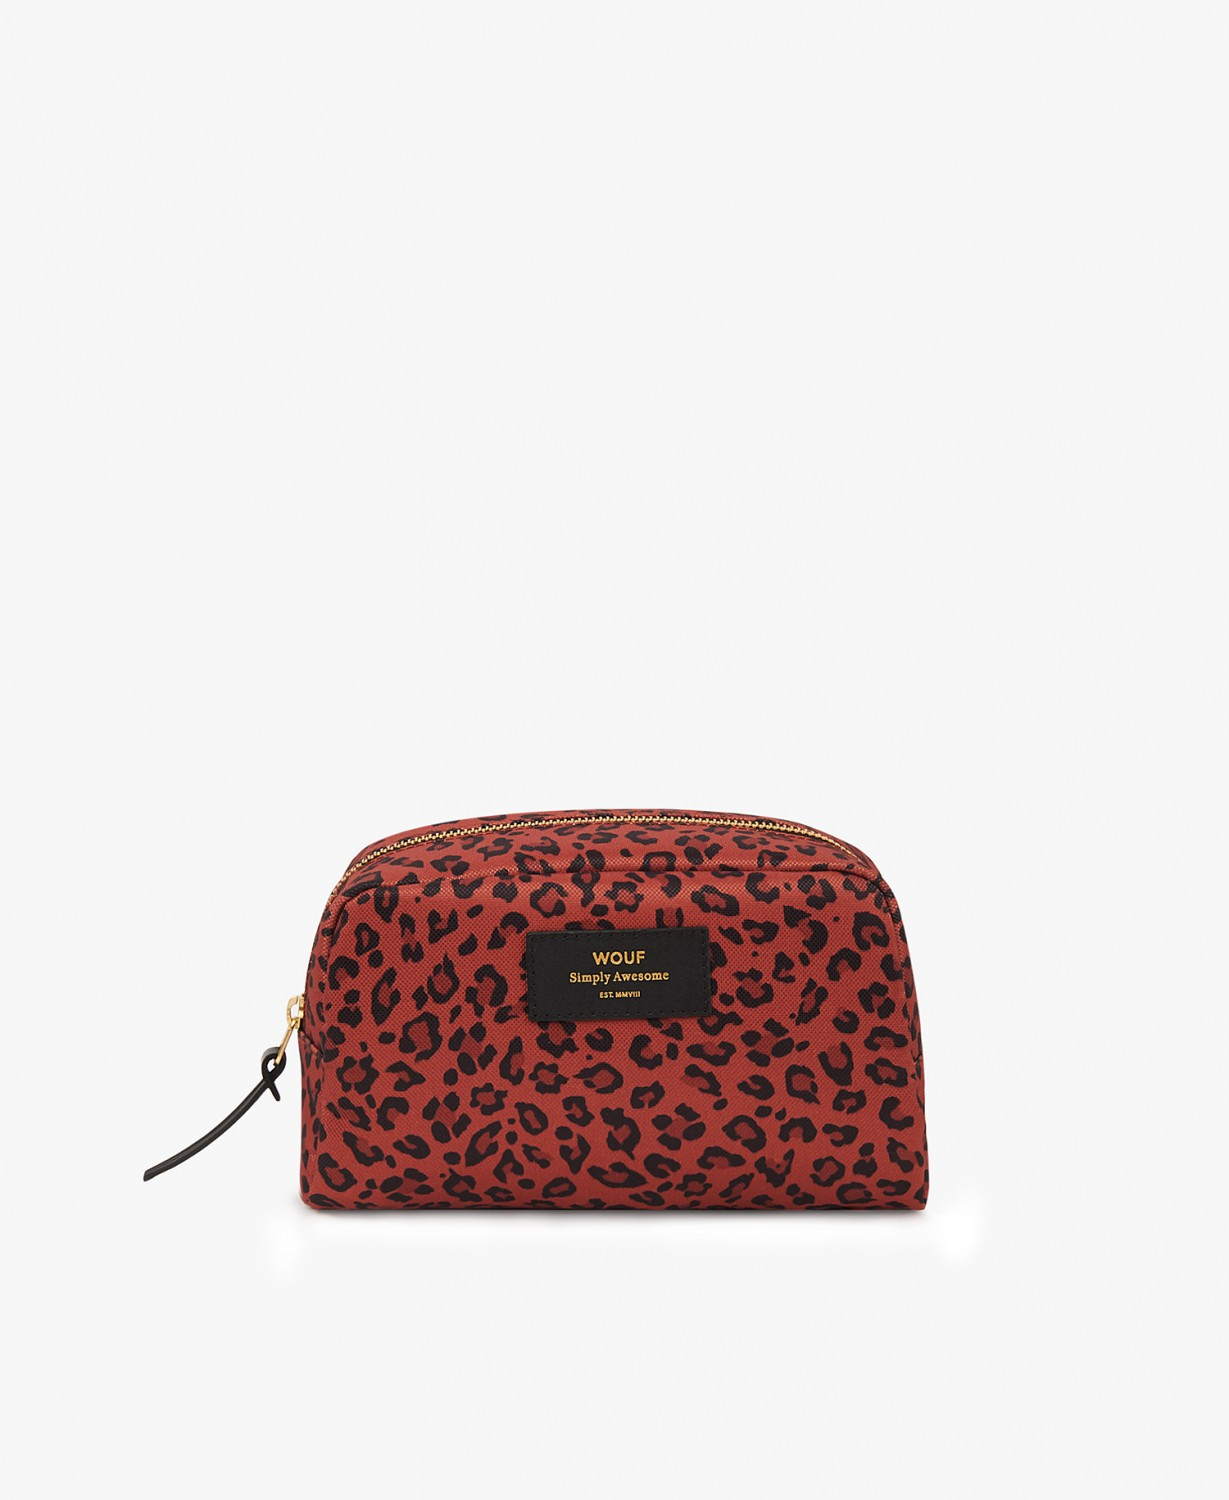 WOUF | Savannah makeup bag